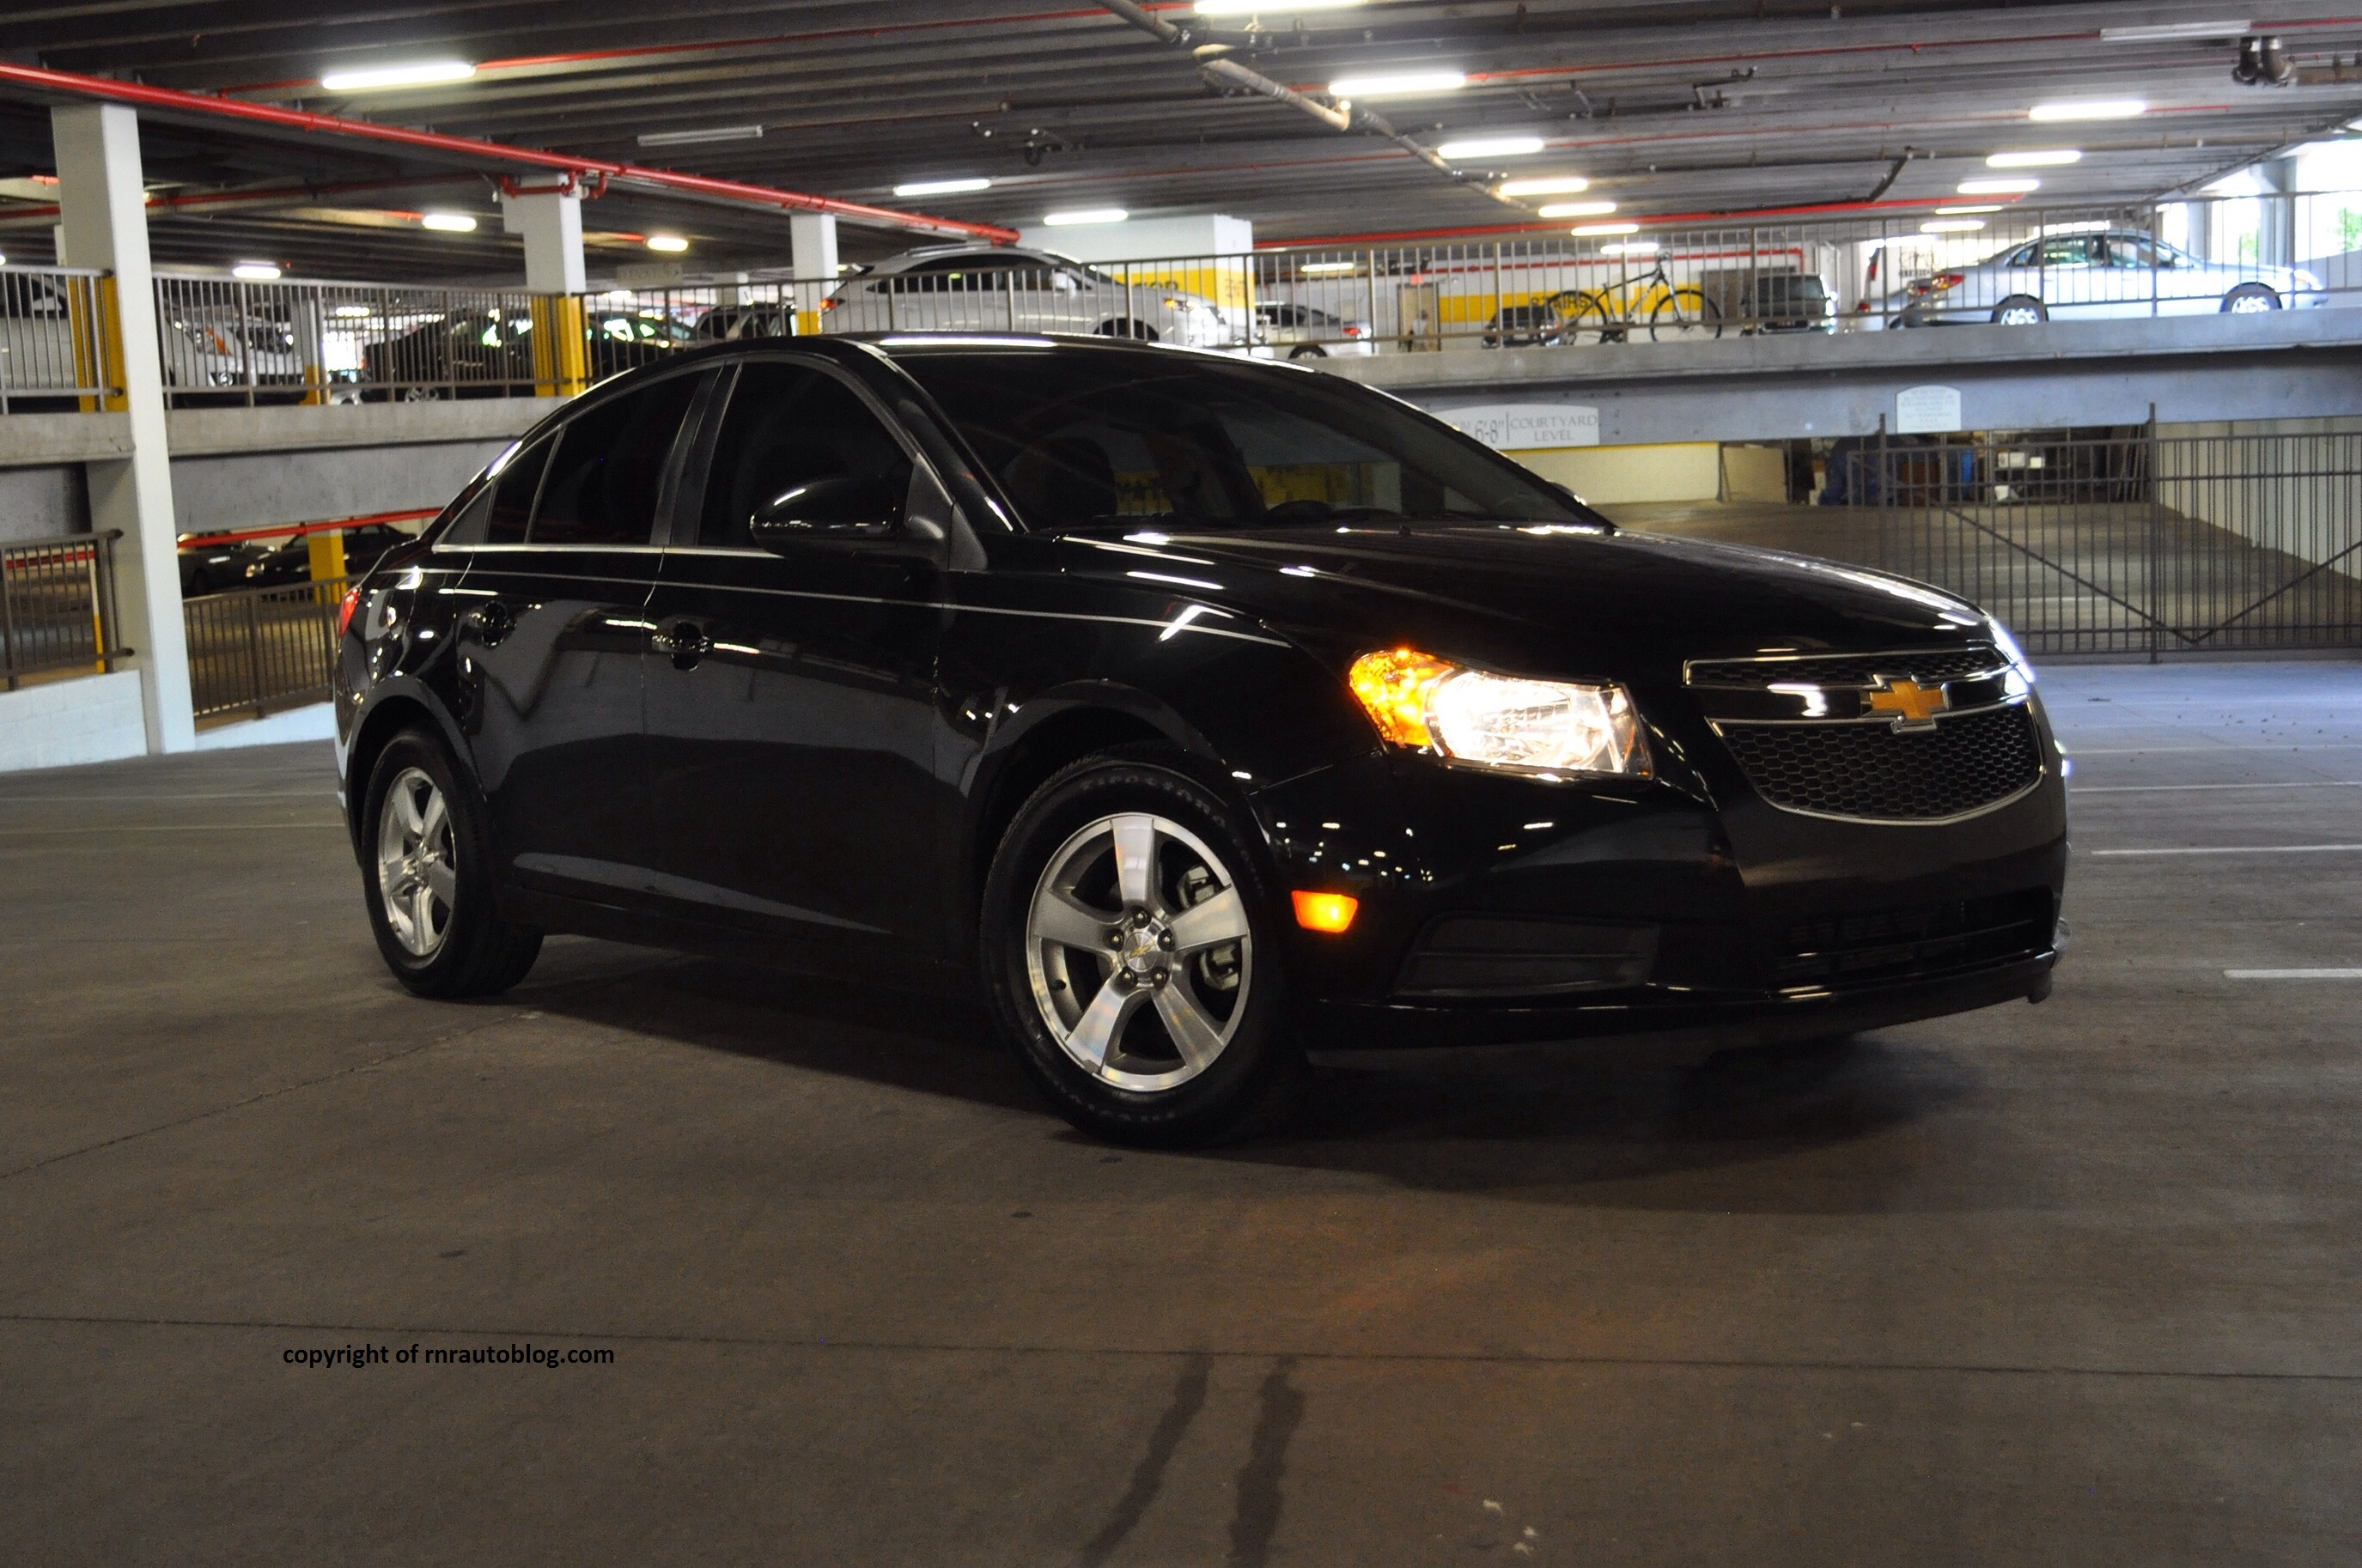 2013 chevrolet cruze lt review rnr automotive blog. Black Bedroom Furniture Sets. Home Design Ideas